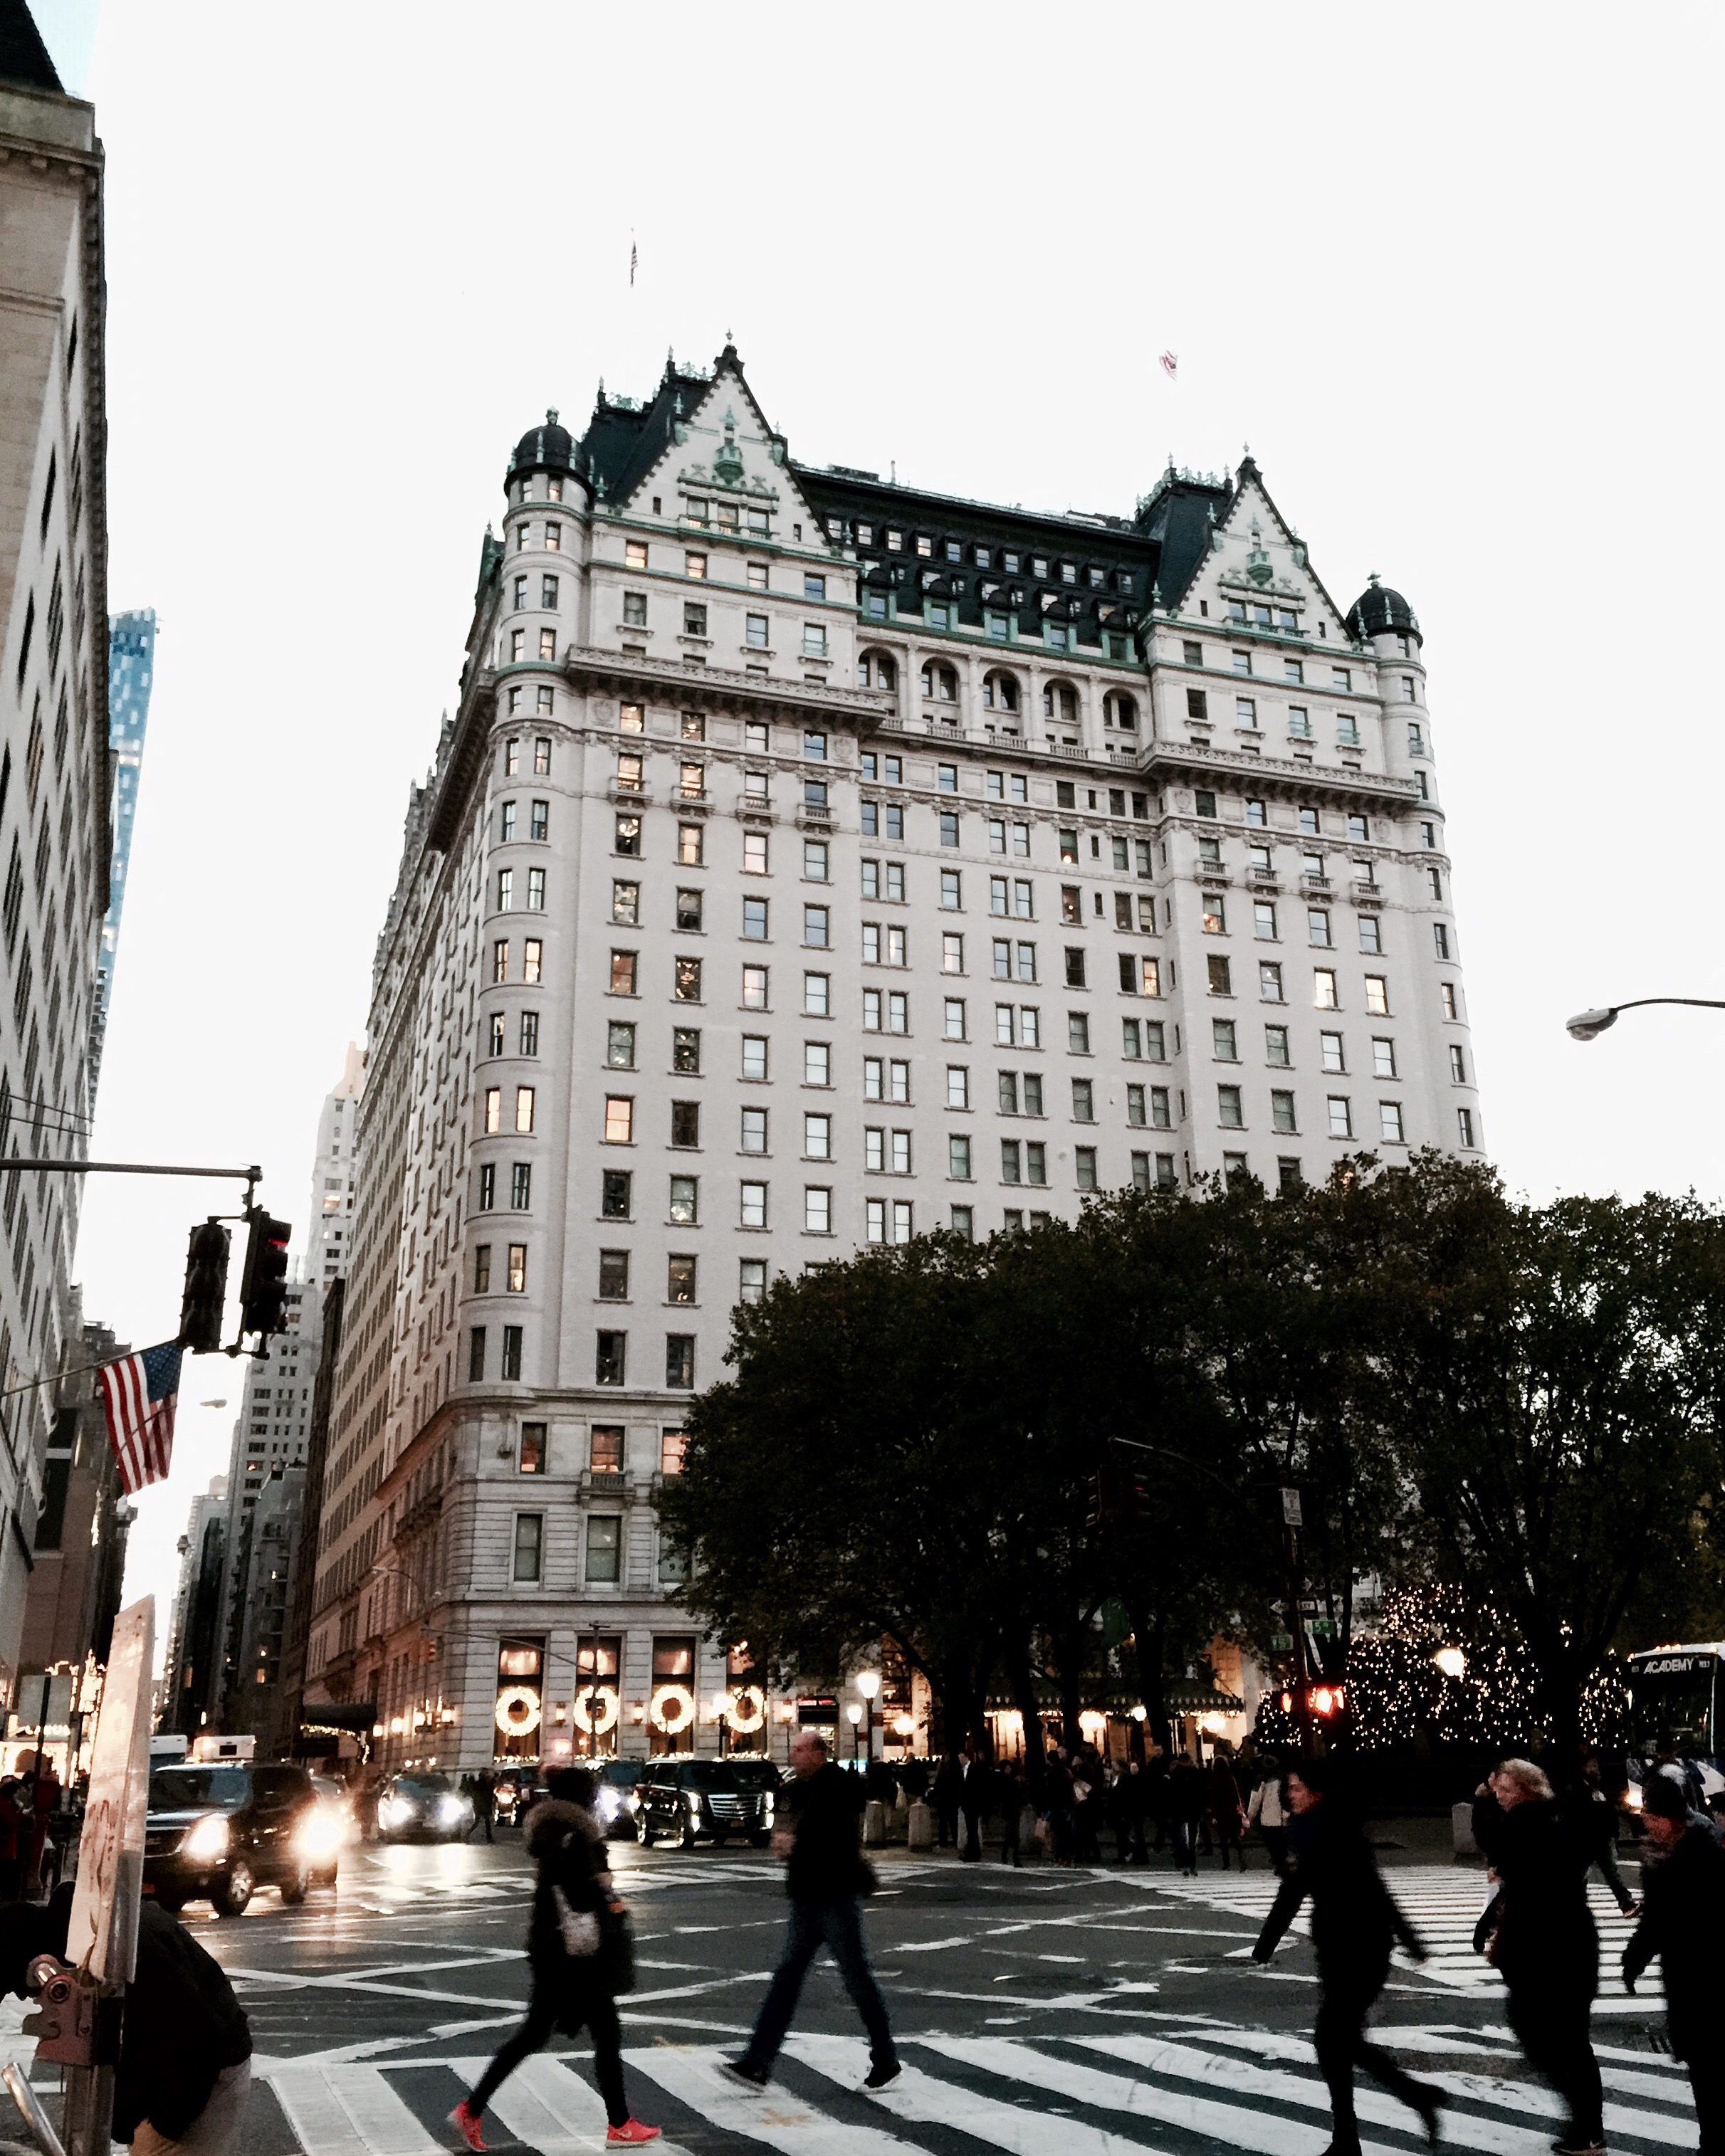 Nothing is as iconic as The Plaza Hotel, especially during the holidays